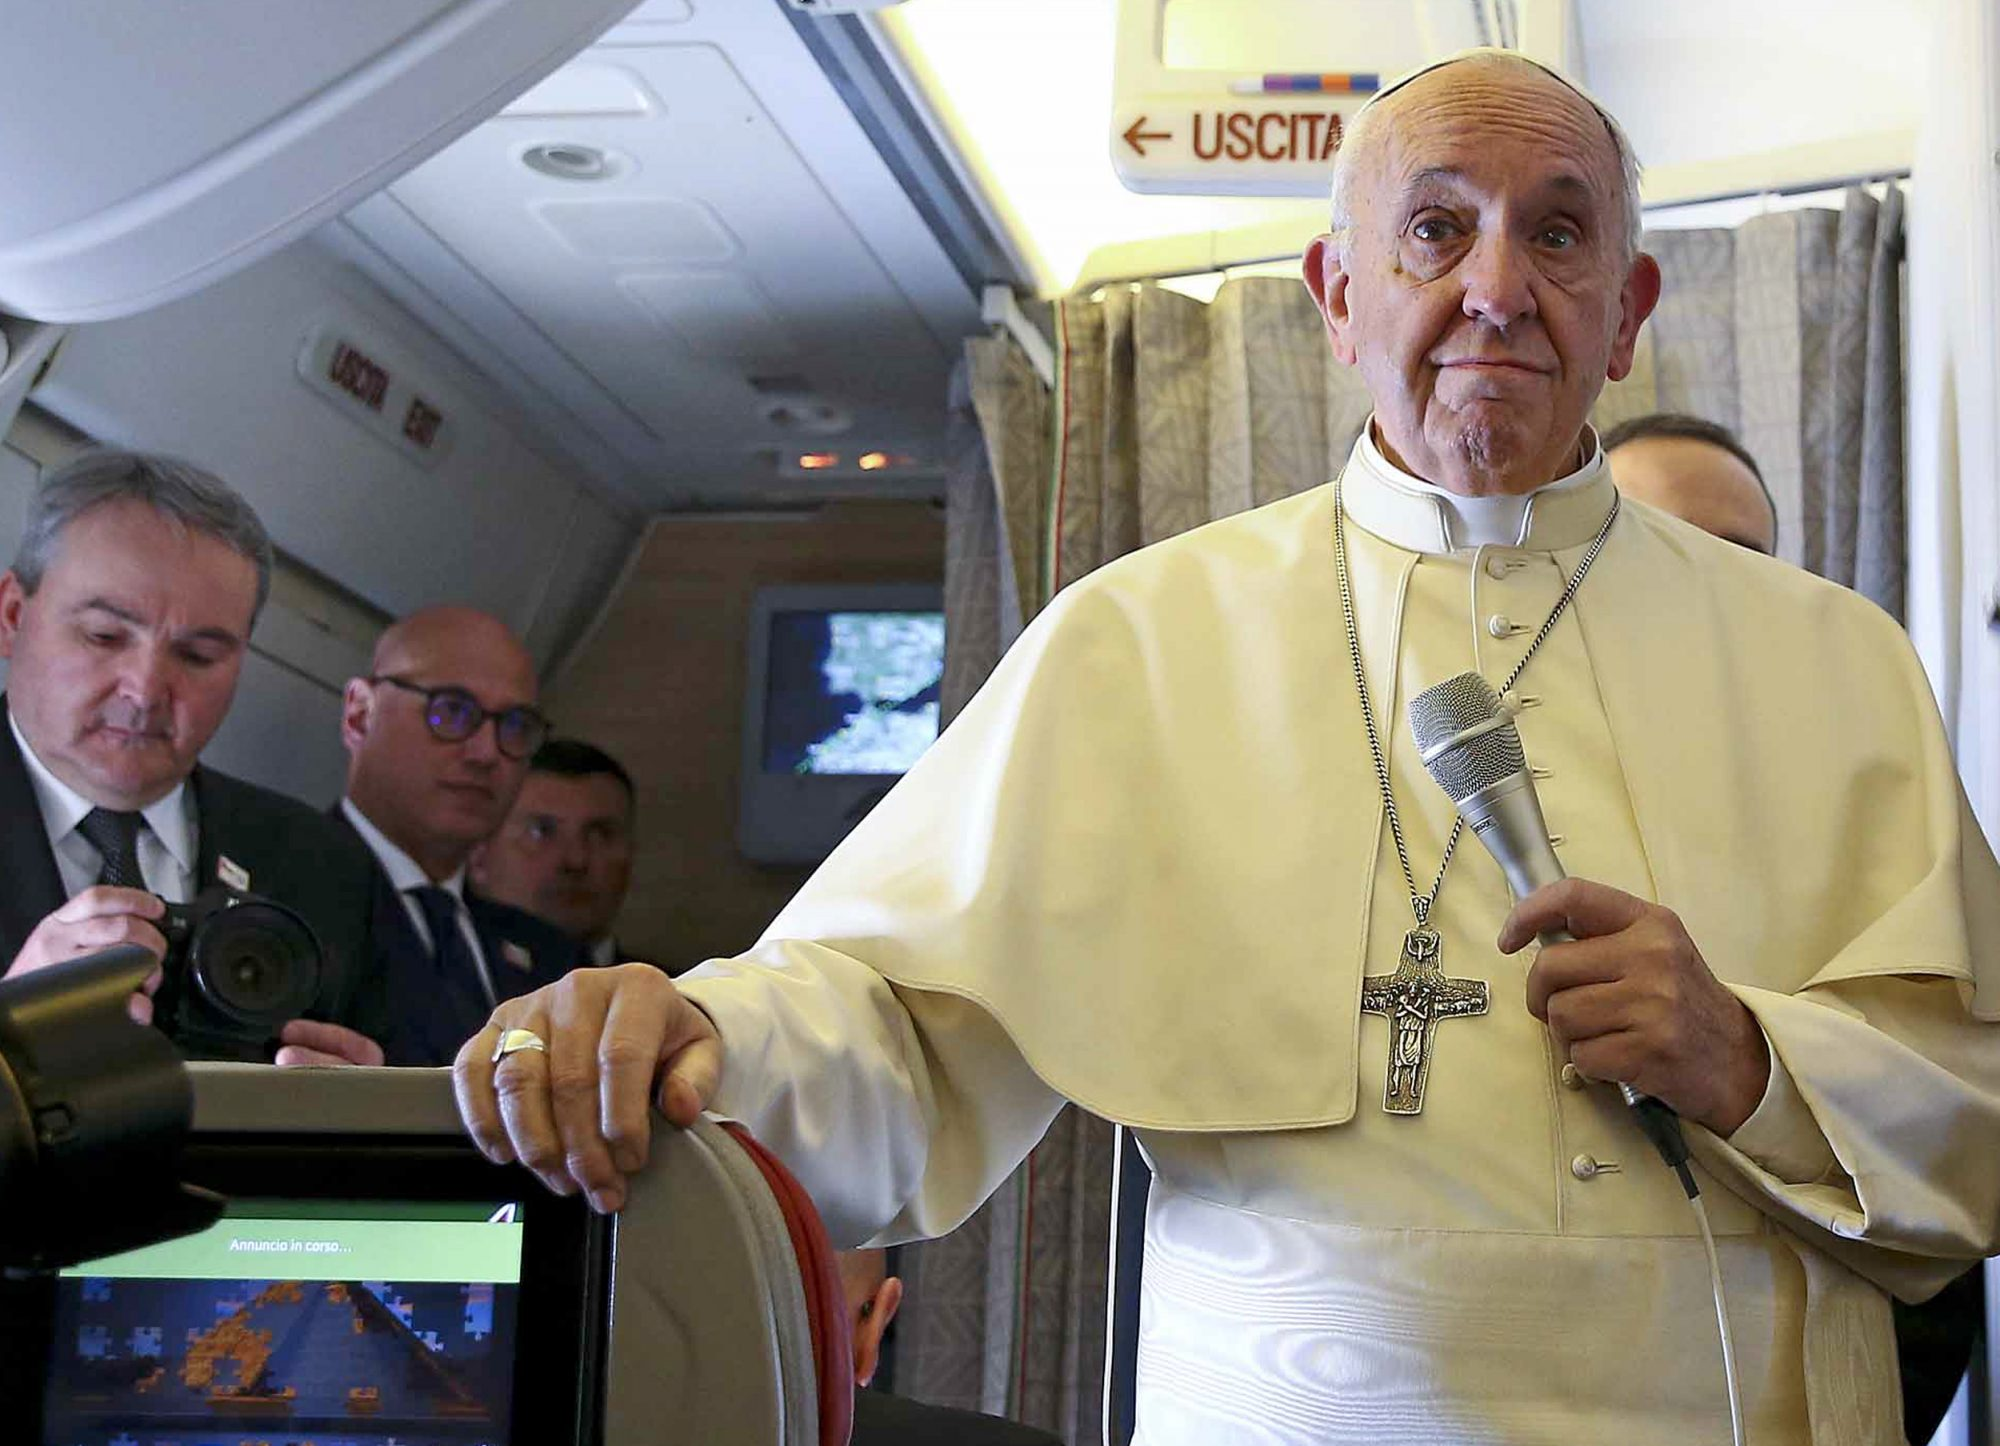 VATICAN-POPE-CHILE-VISIT-PLANE